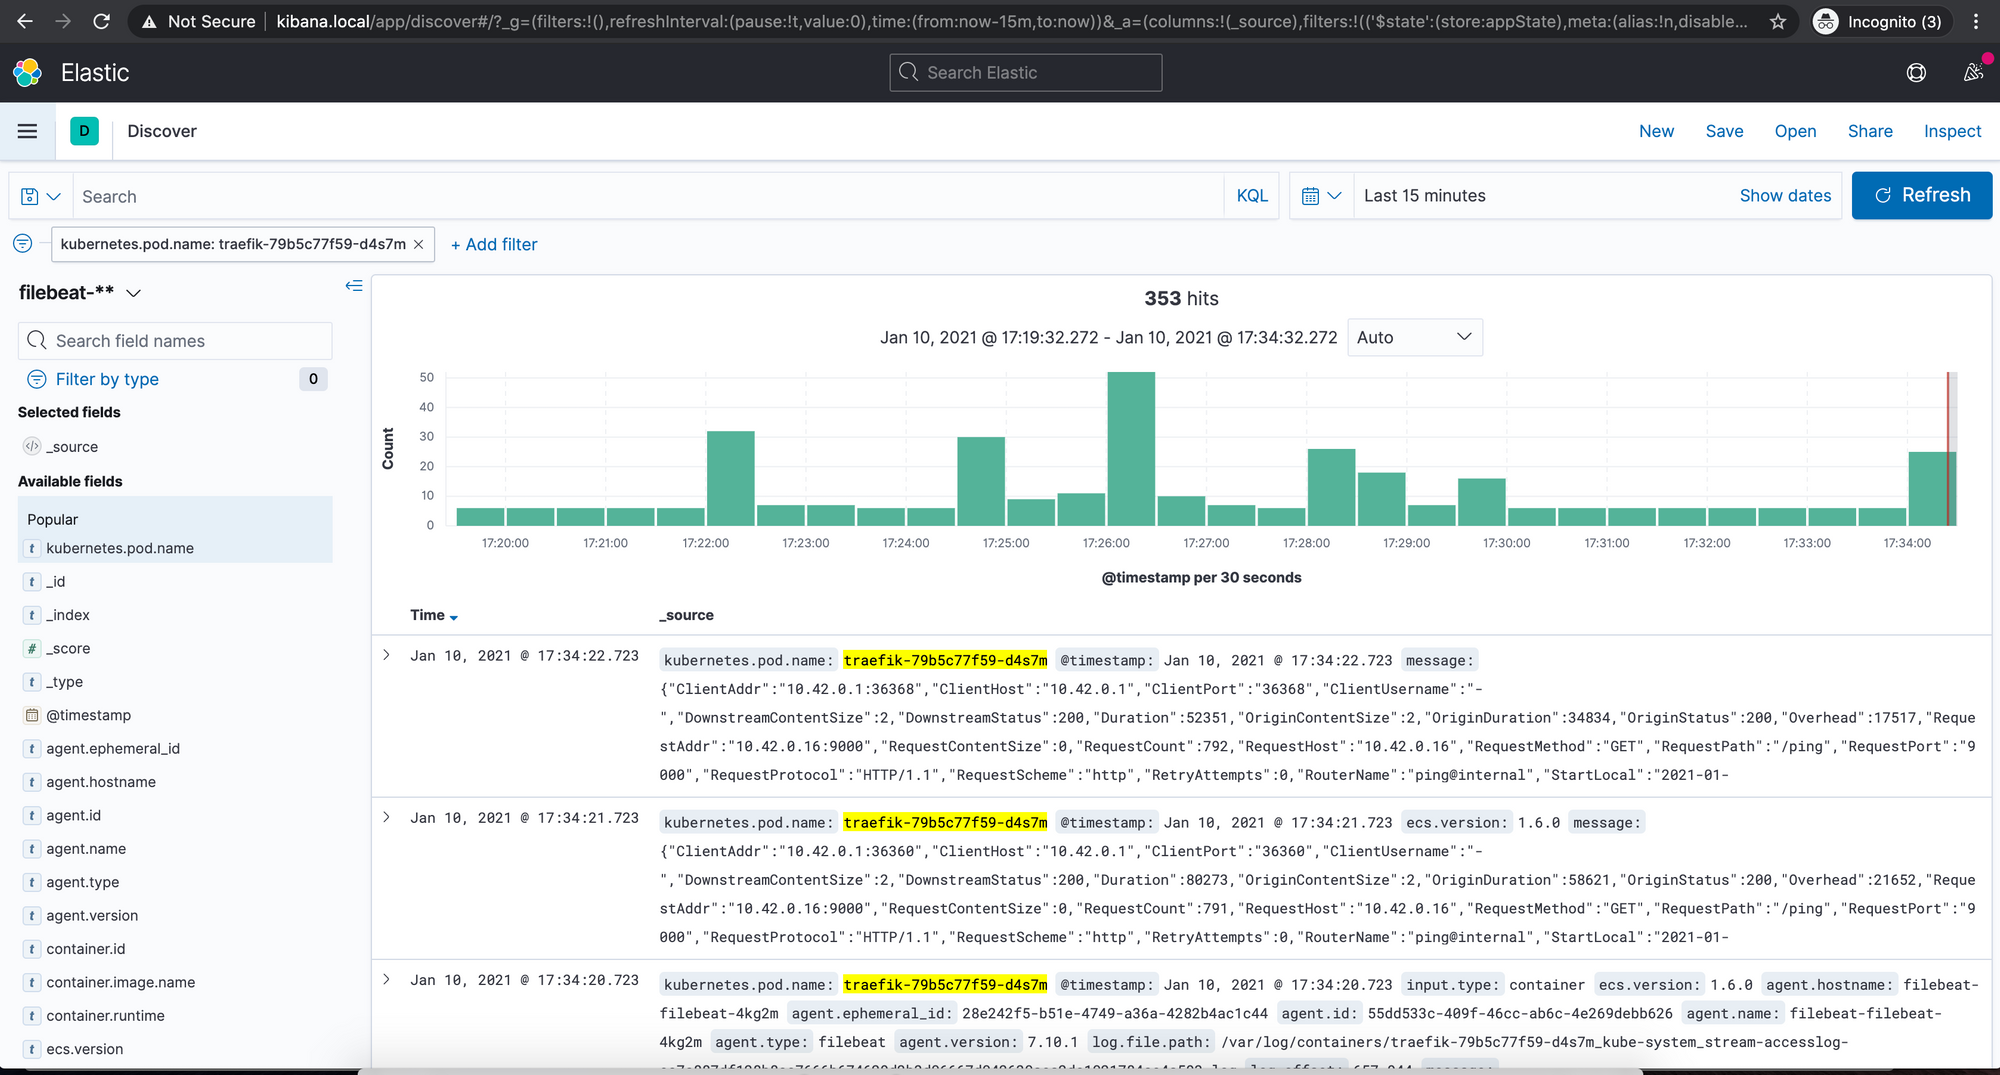 Screenshot of Kibana Discover page